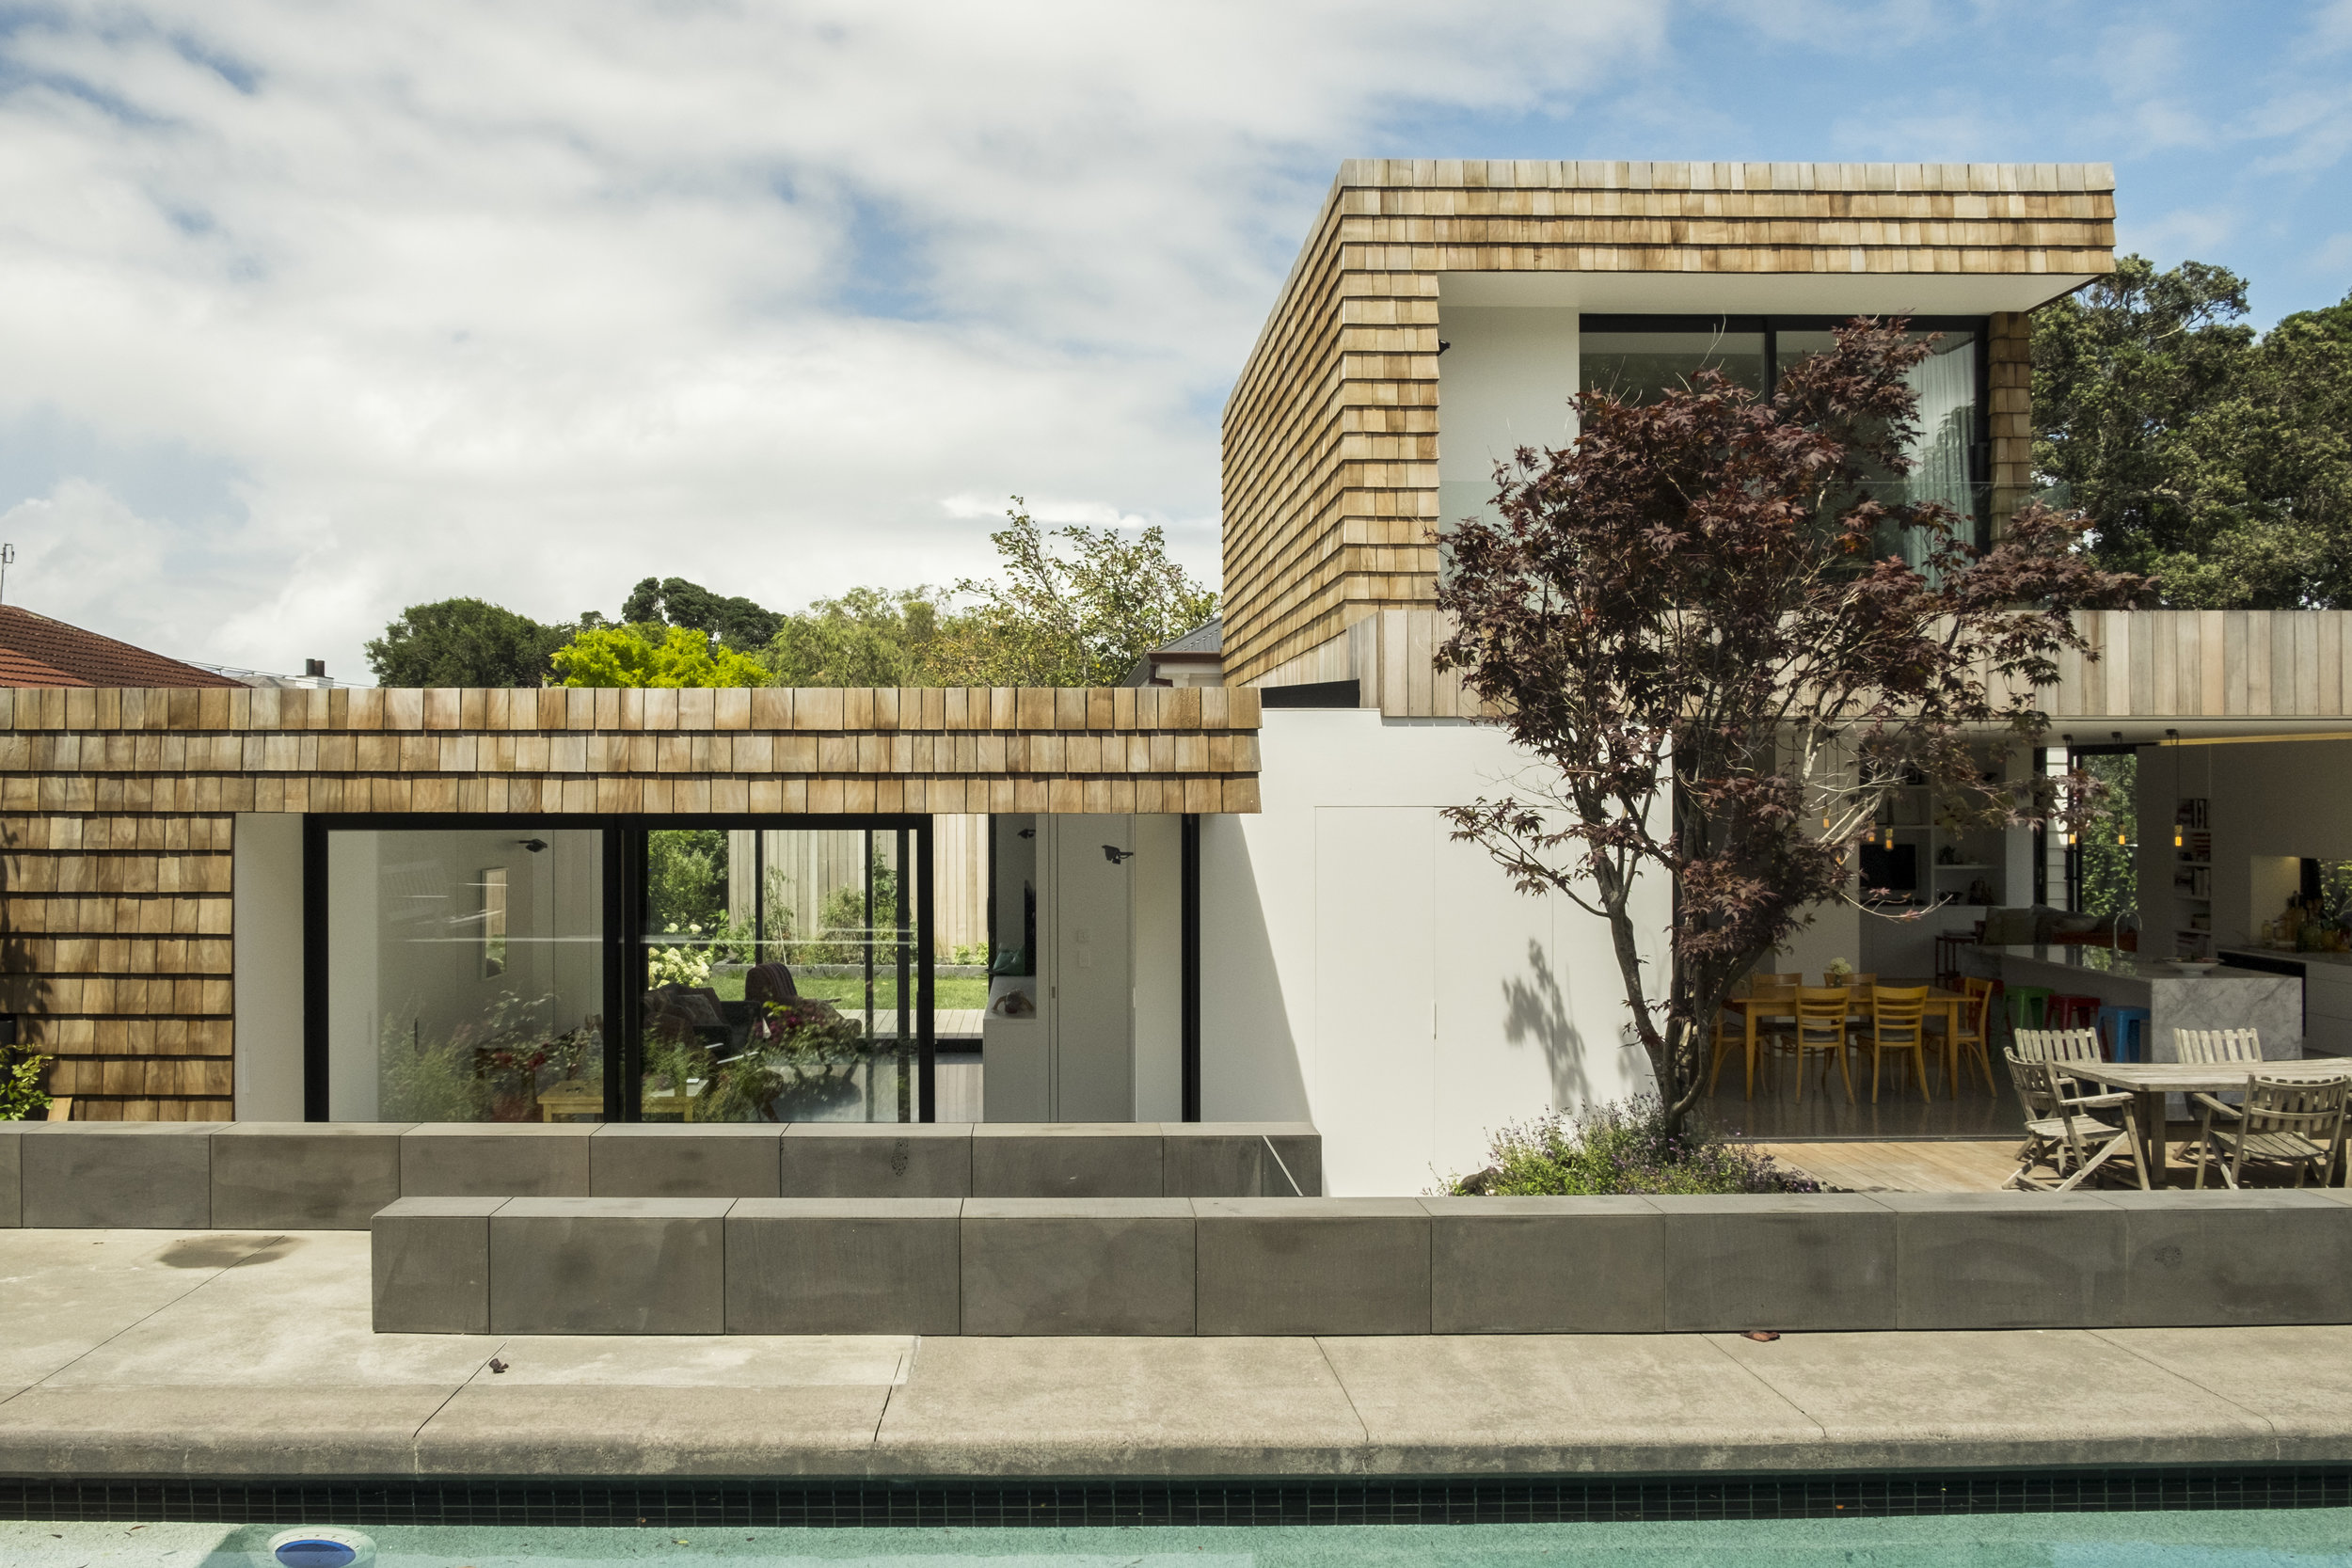 Case Study Villa_North Elevation from swimming pool_1 of 7.jpg